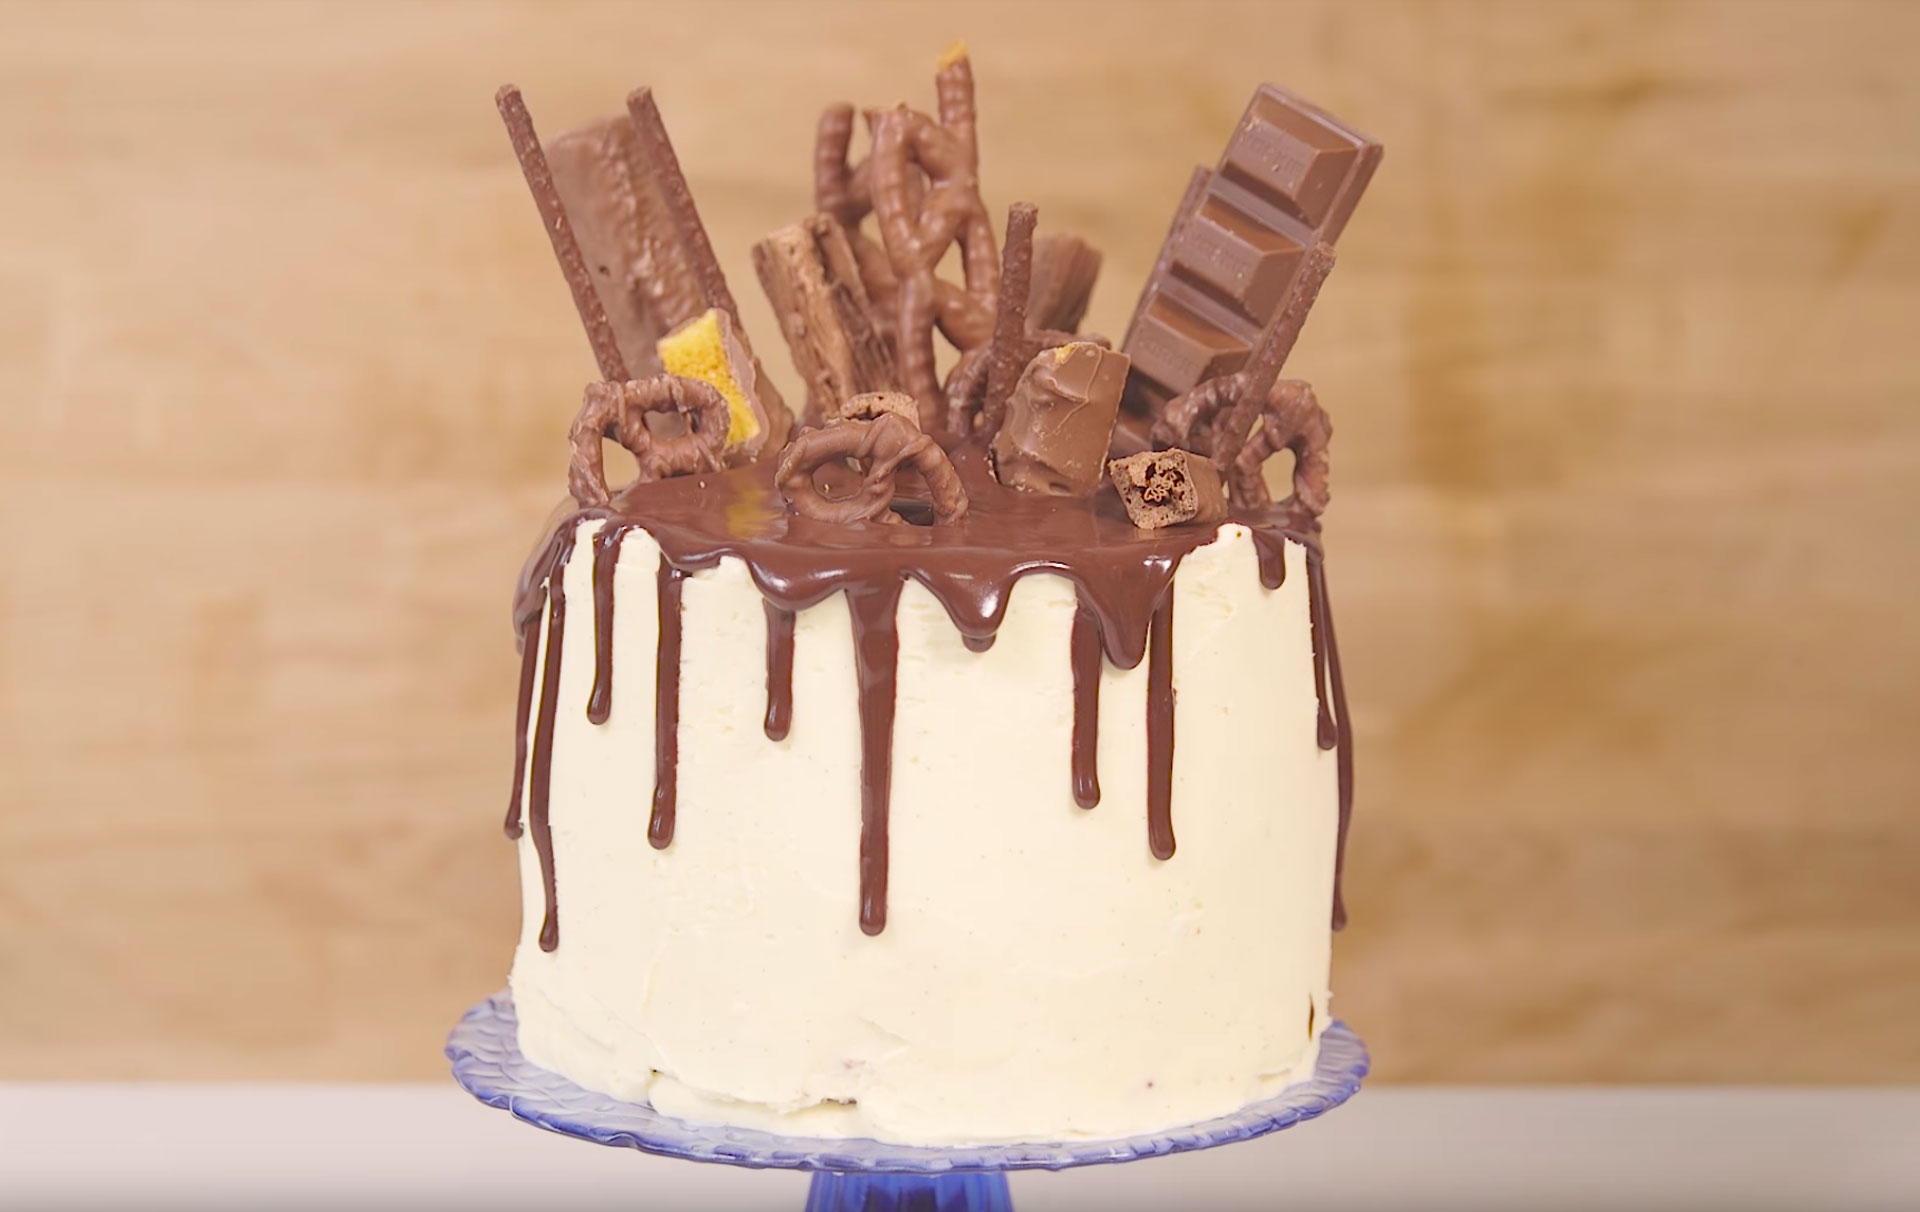 Chocolate Explosion Drip Cake Baking Recipes Goodtoknow